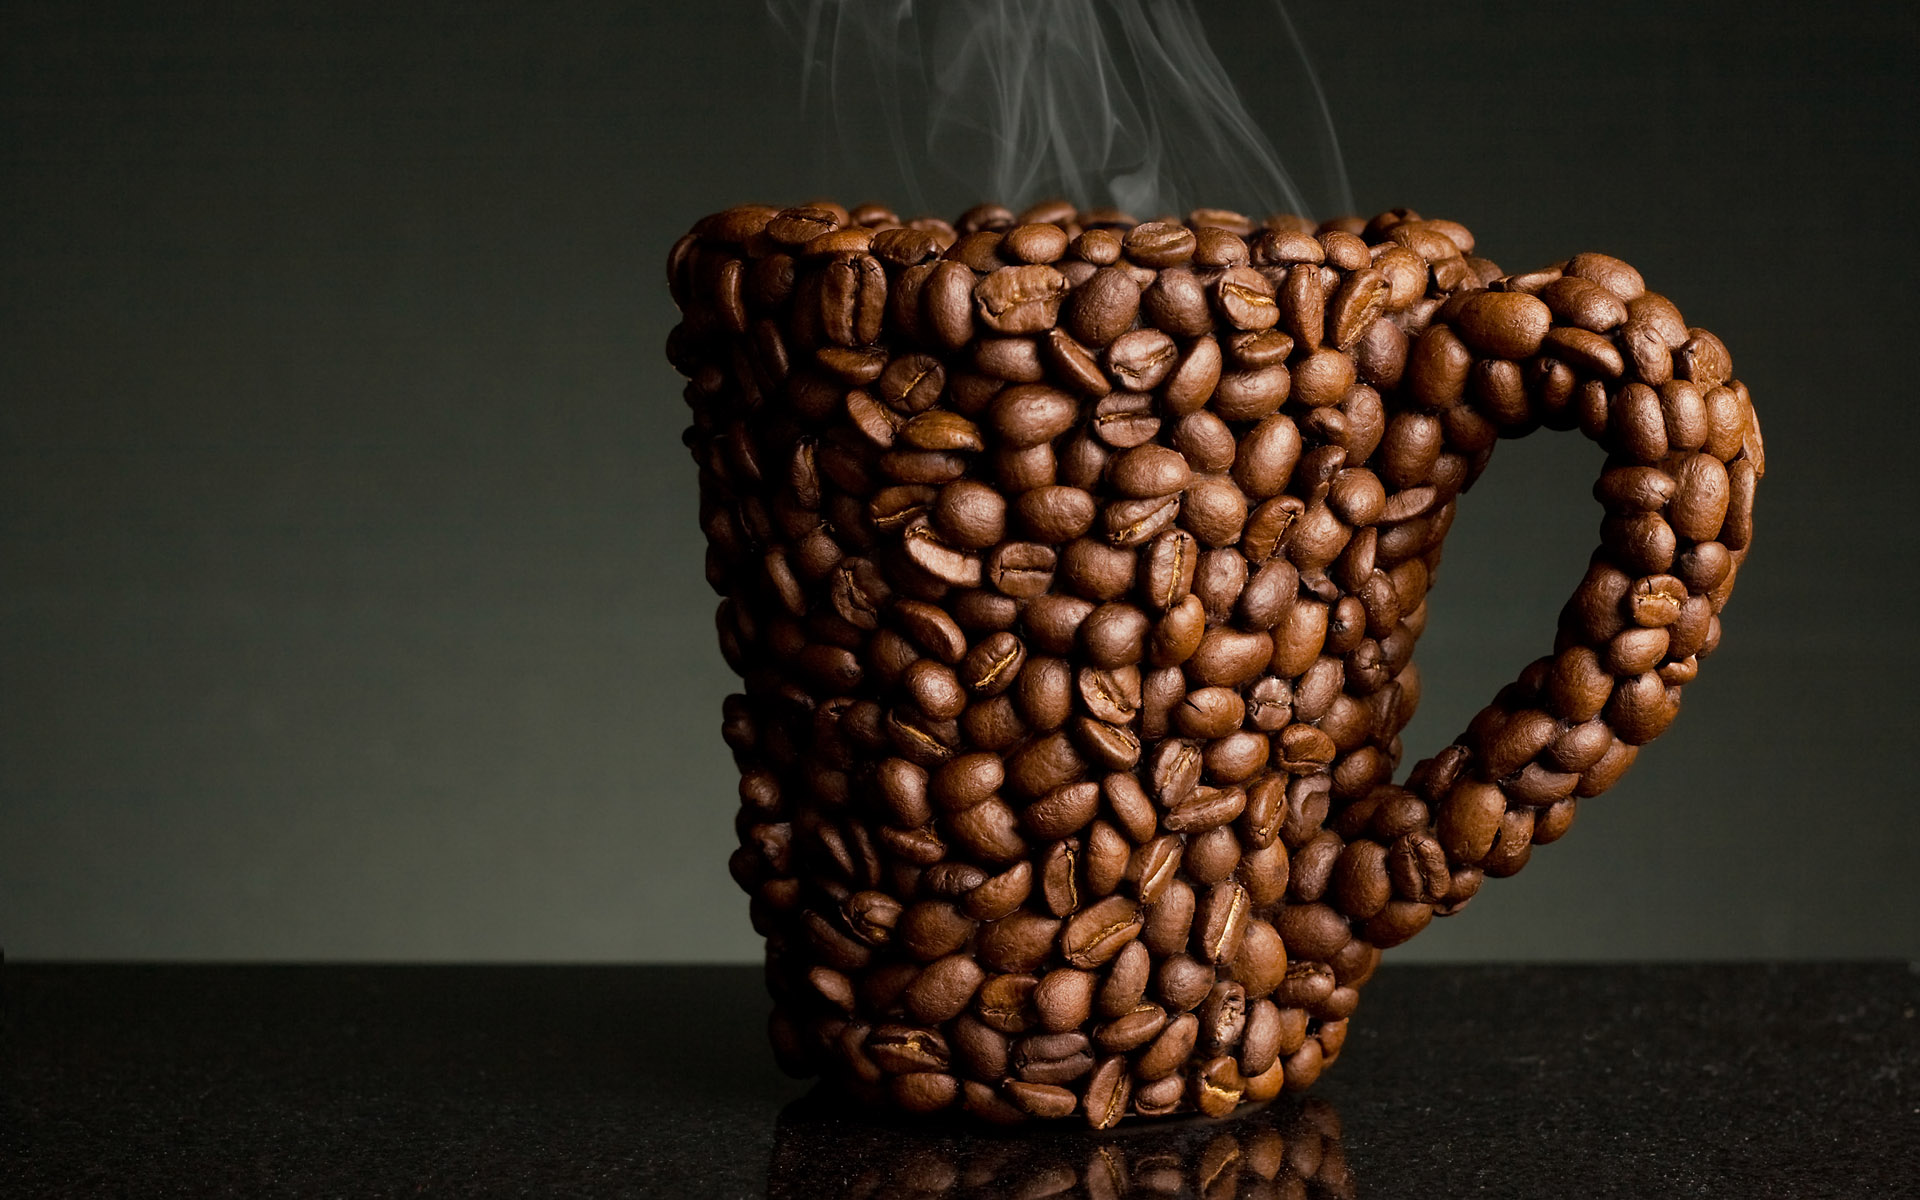 Coffee and coffee beans close-up 16435